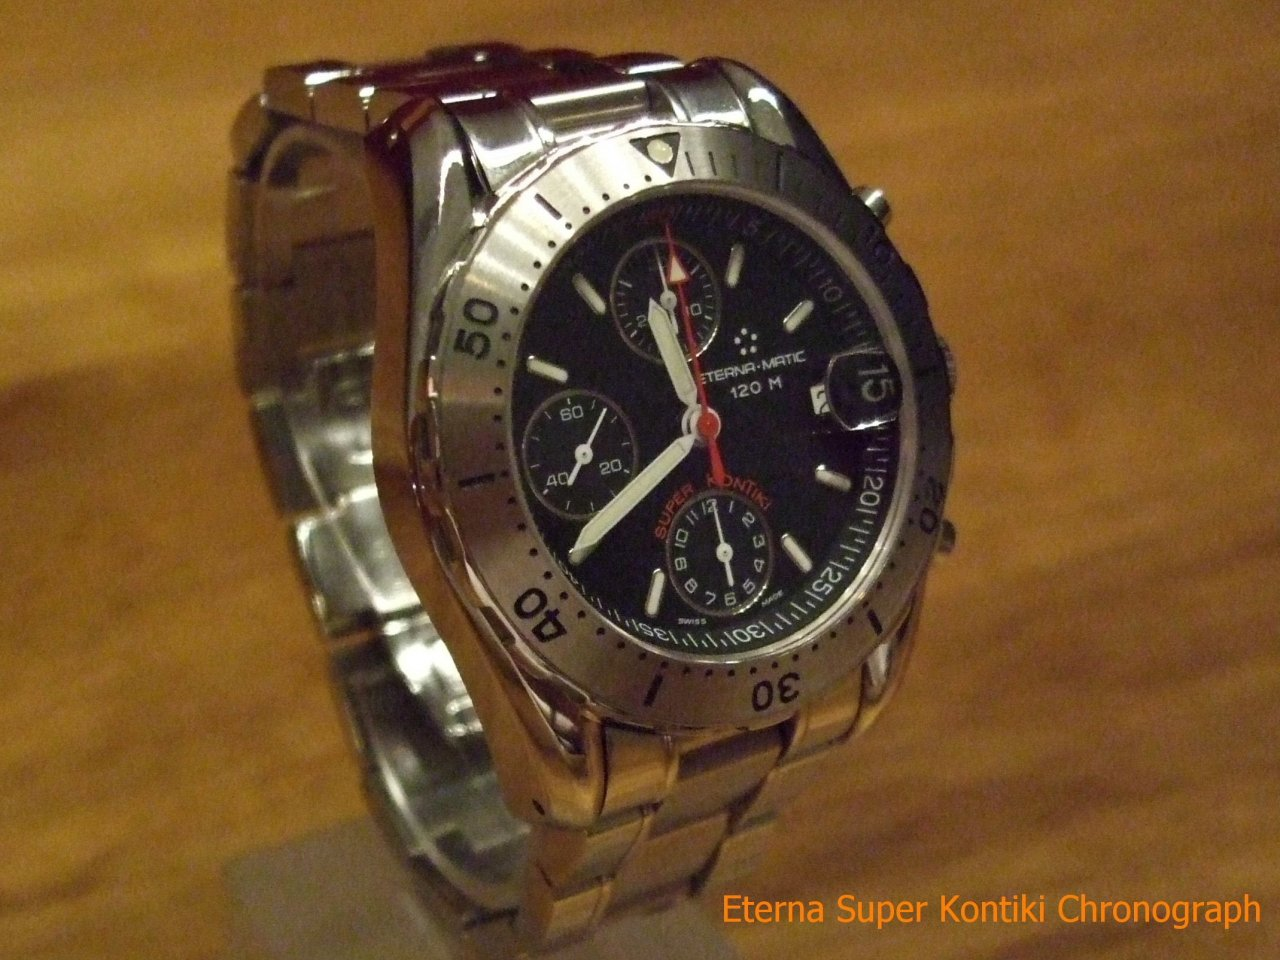 Eterna Super Kontiki Chronograph Eterna-super-kontiki-chrono